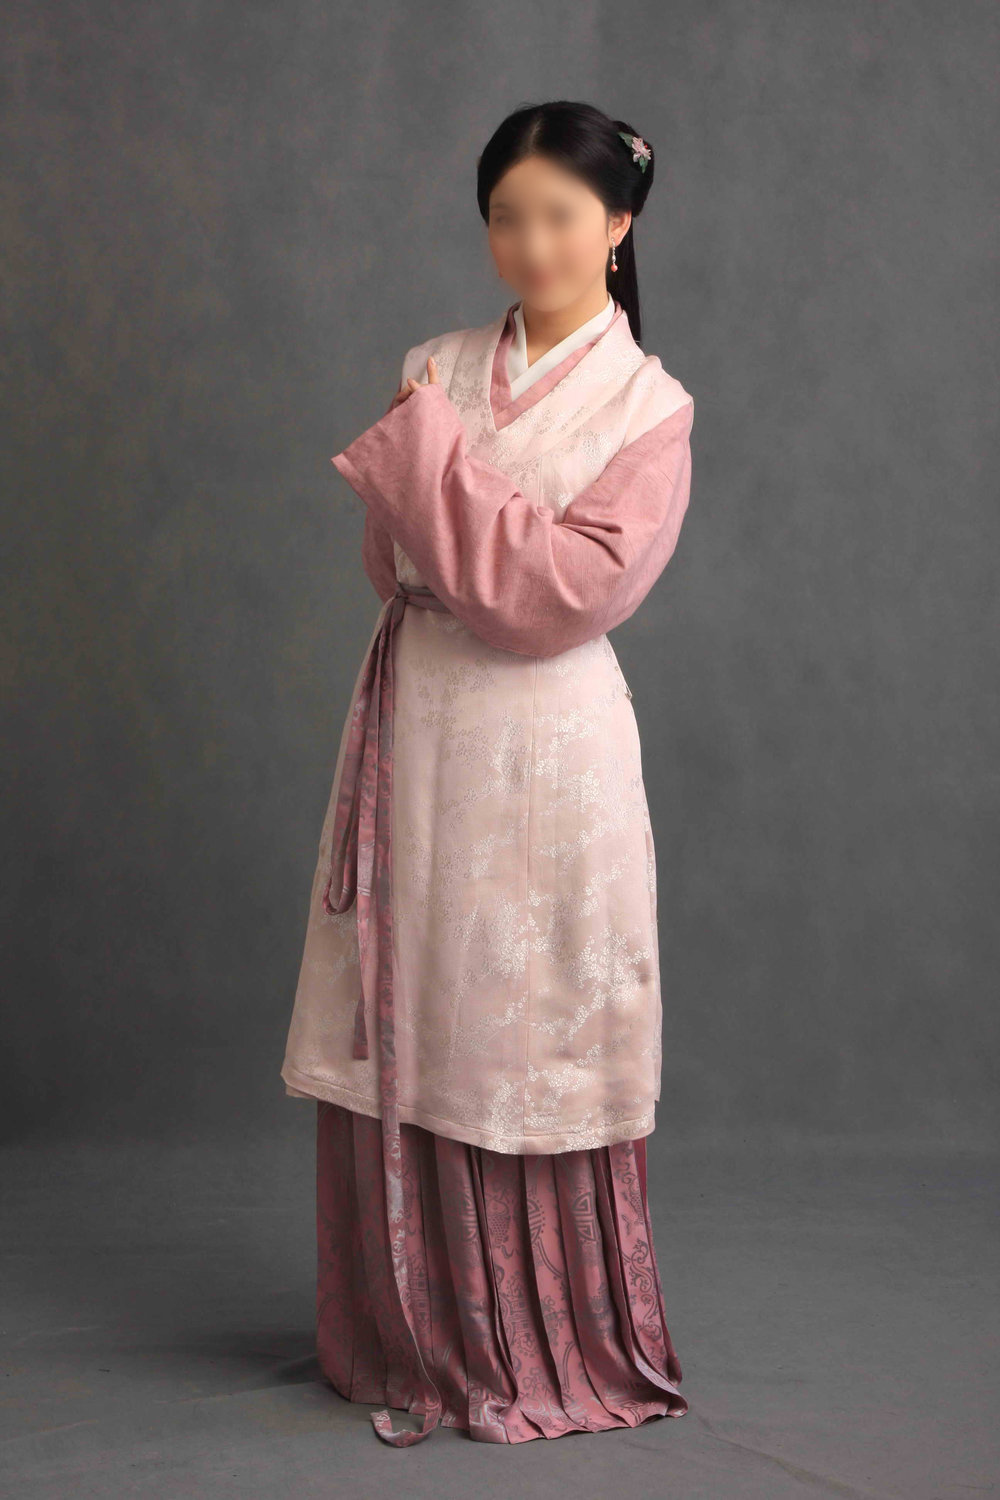 - Servant Girl's Costume